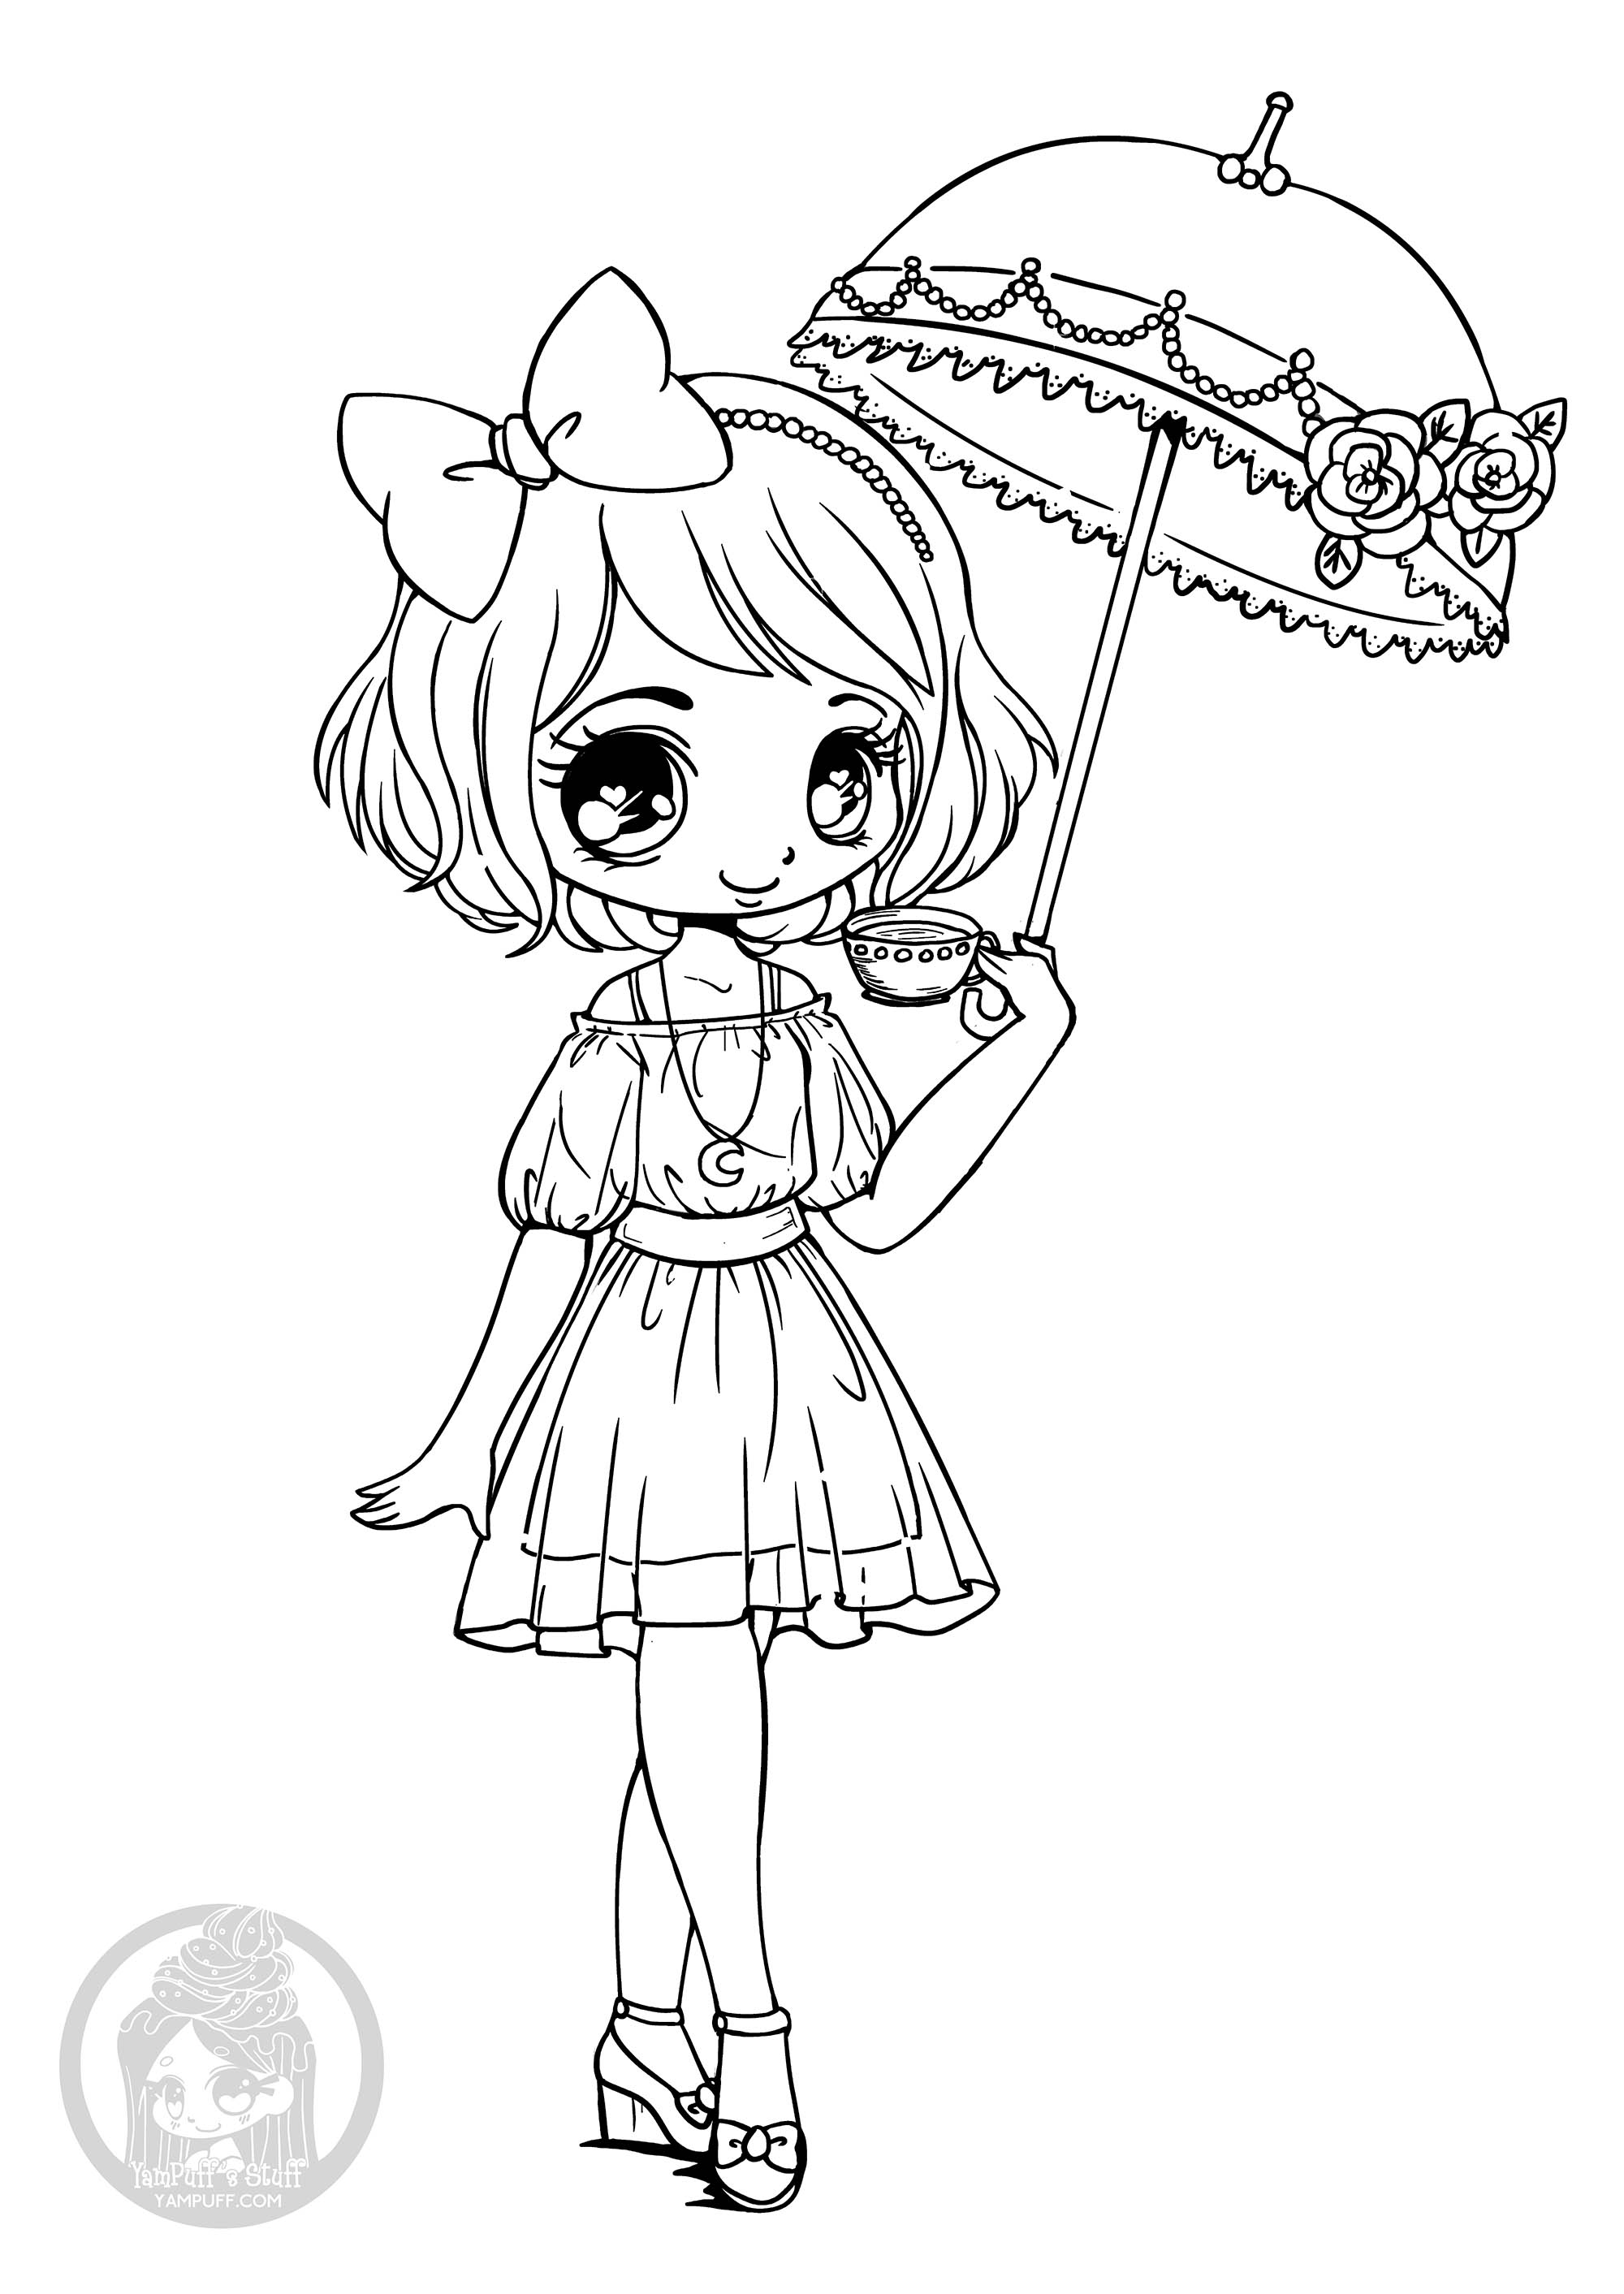 picture of a girl to color girl coloring page 21 coloring page free others coloring a of to girl picture color